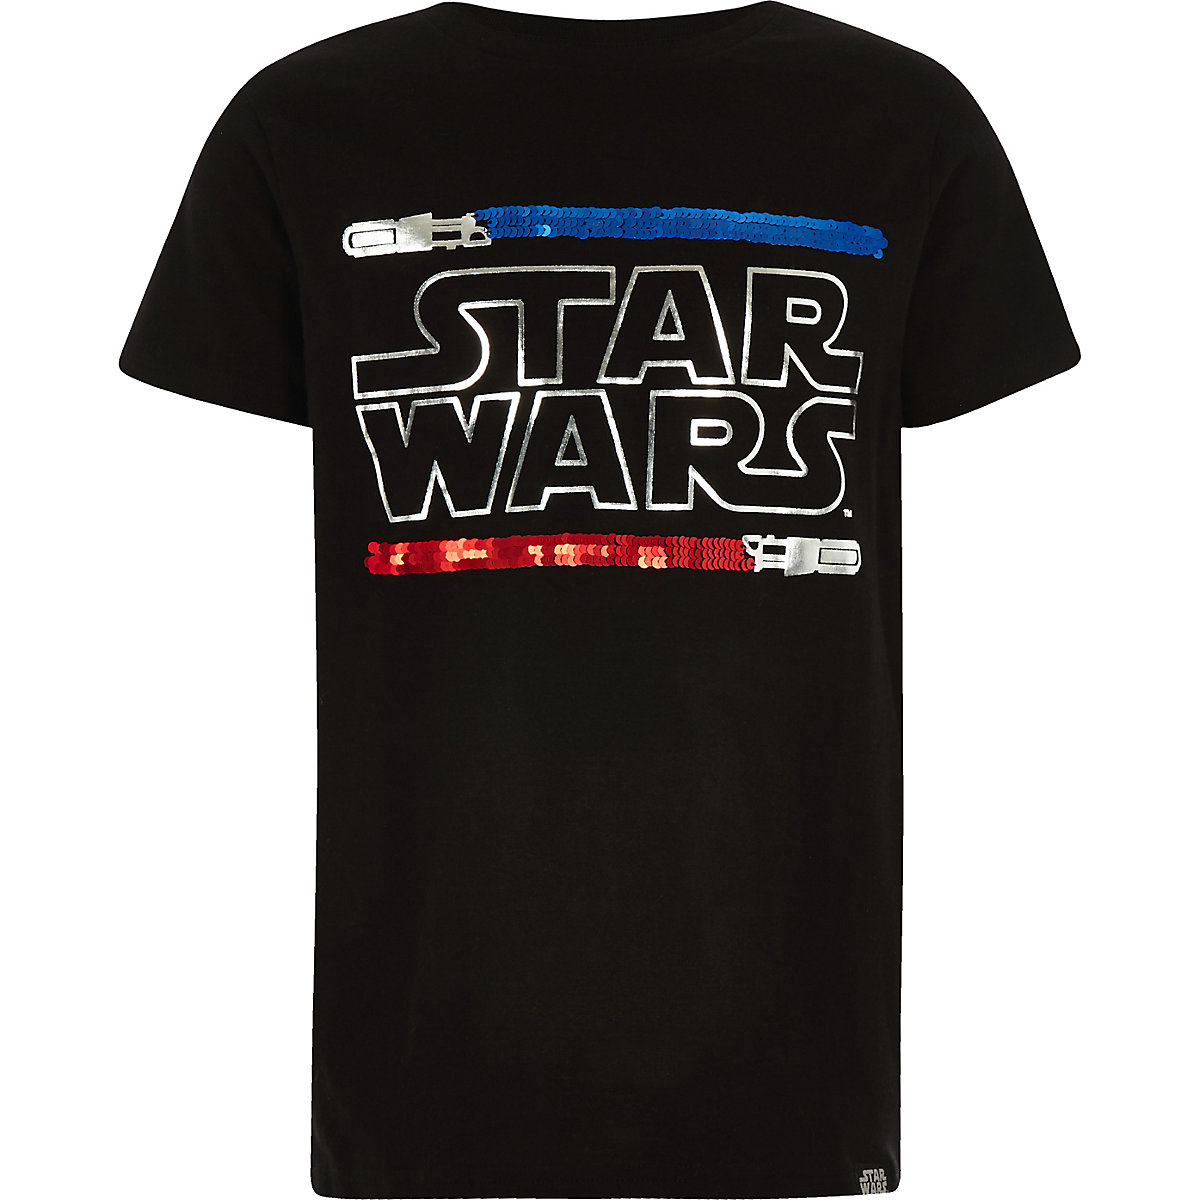 Black Star Wars reverse sequin T-shirt